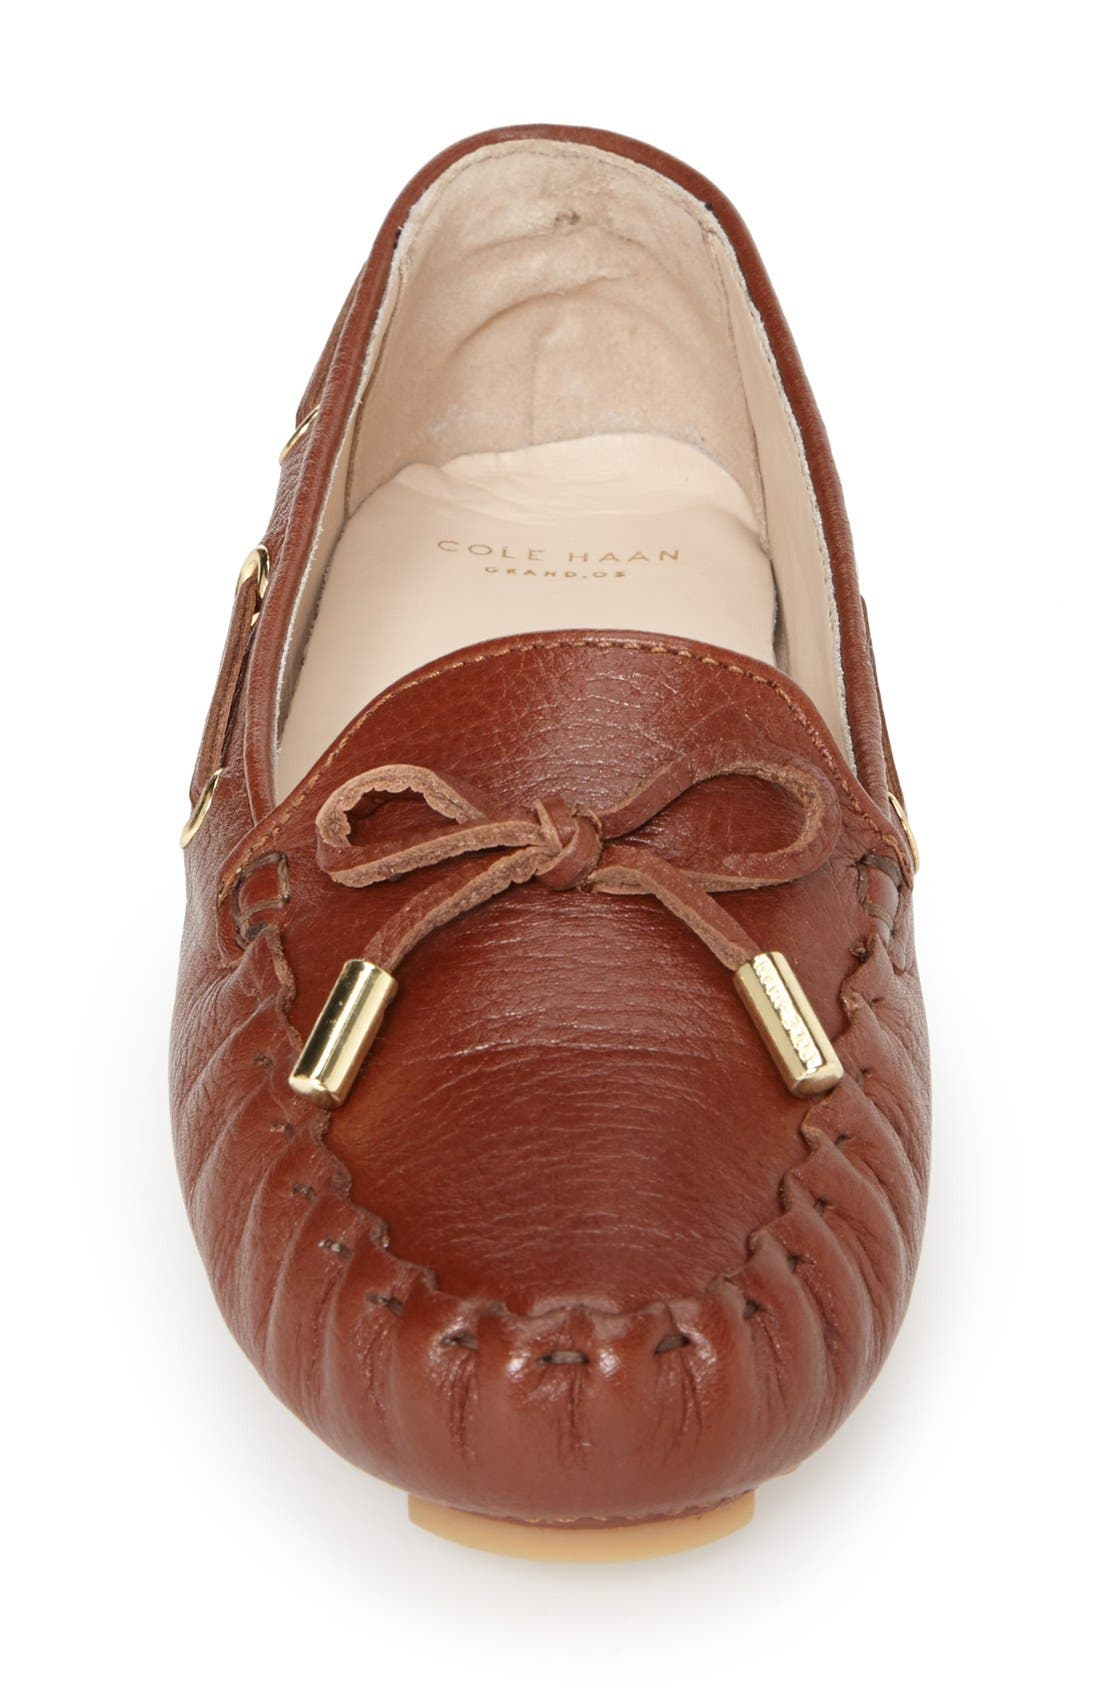 'Cary' Leather Driving Flat,                             Alternate thumbnail 4, color,                             Woodbury